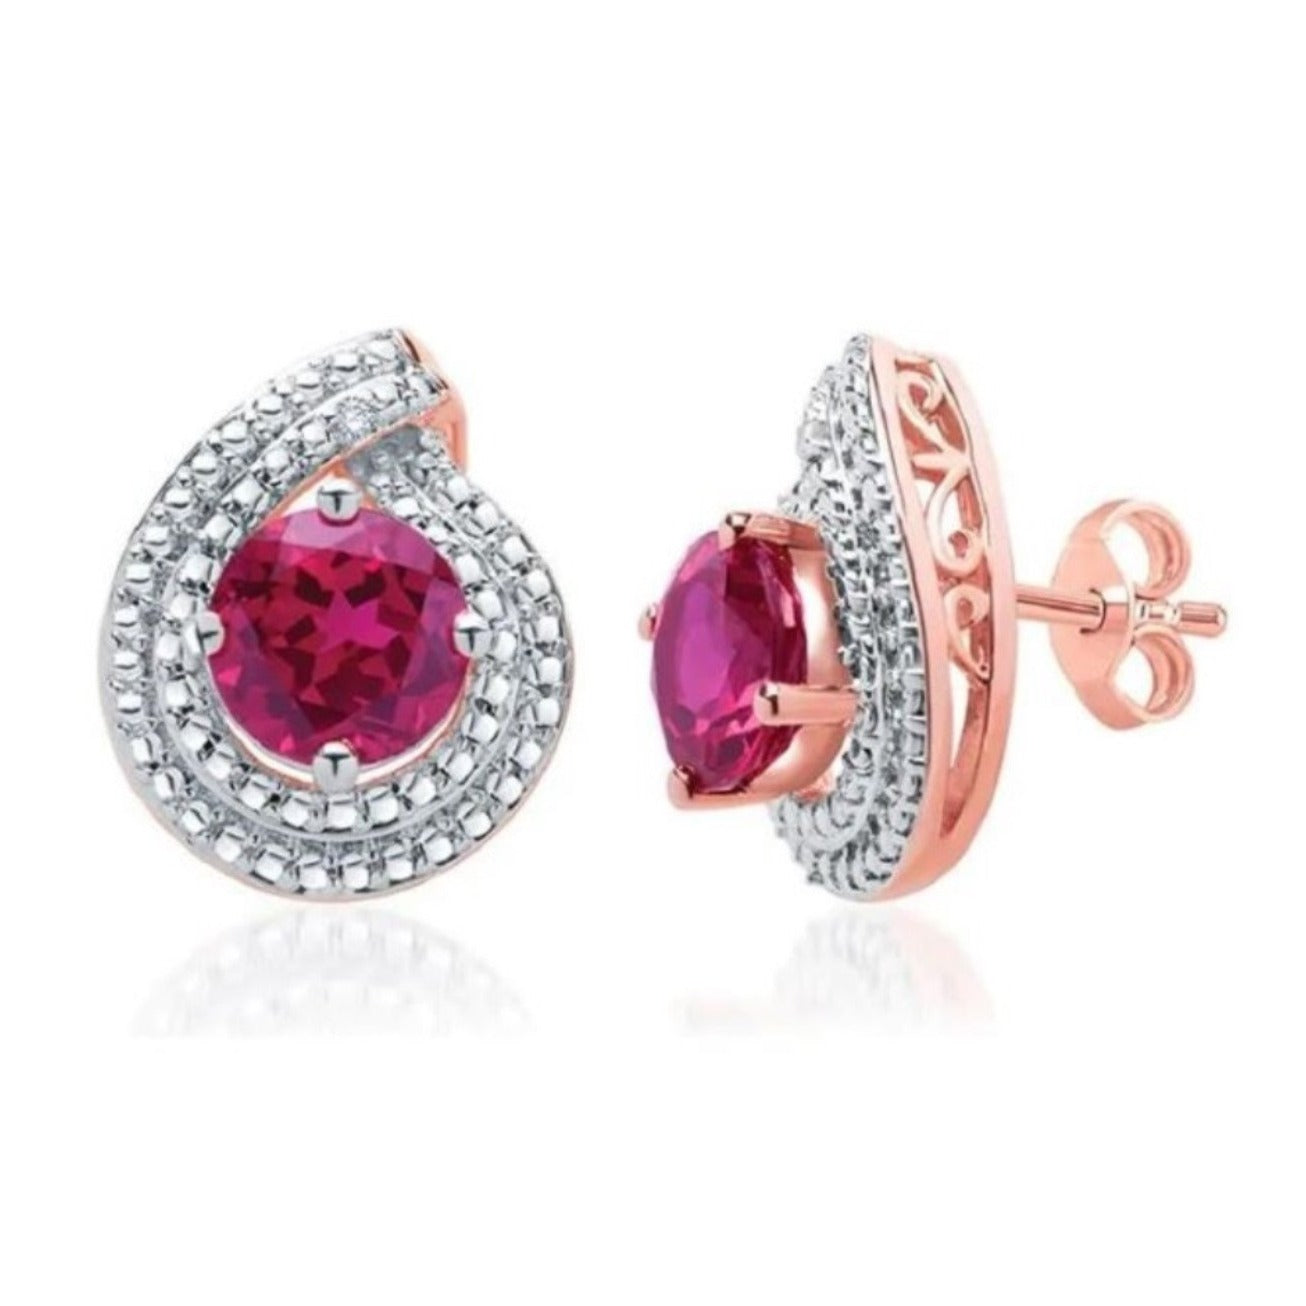 Exquisite 3 Carat Created Round Shaped Ruby Gemstone With Diamond Accent Set In 14K Rose Gold Plated.